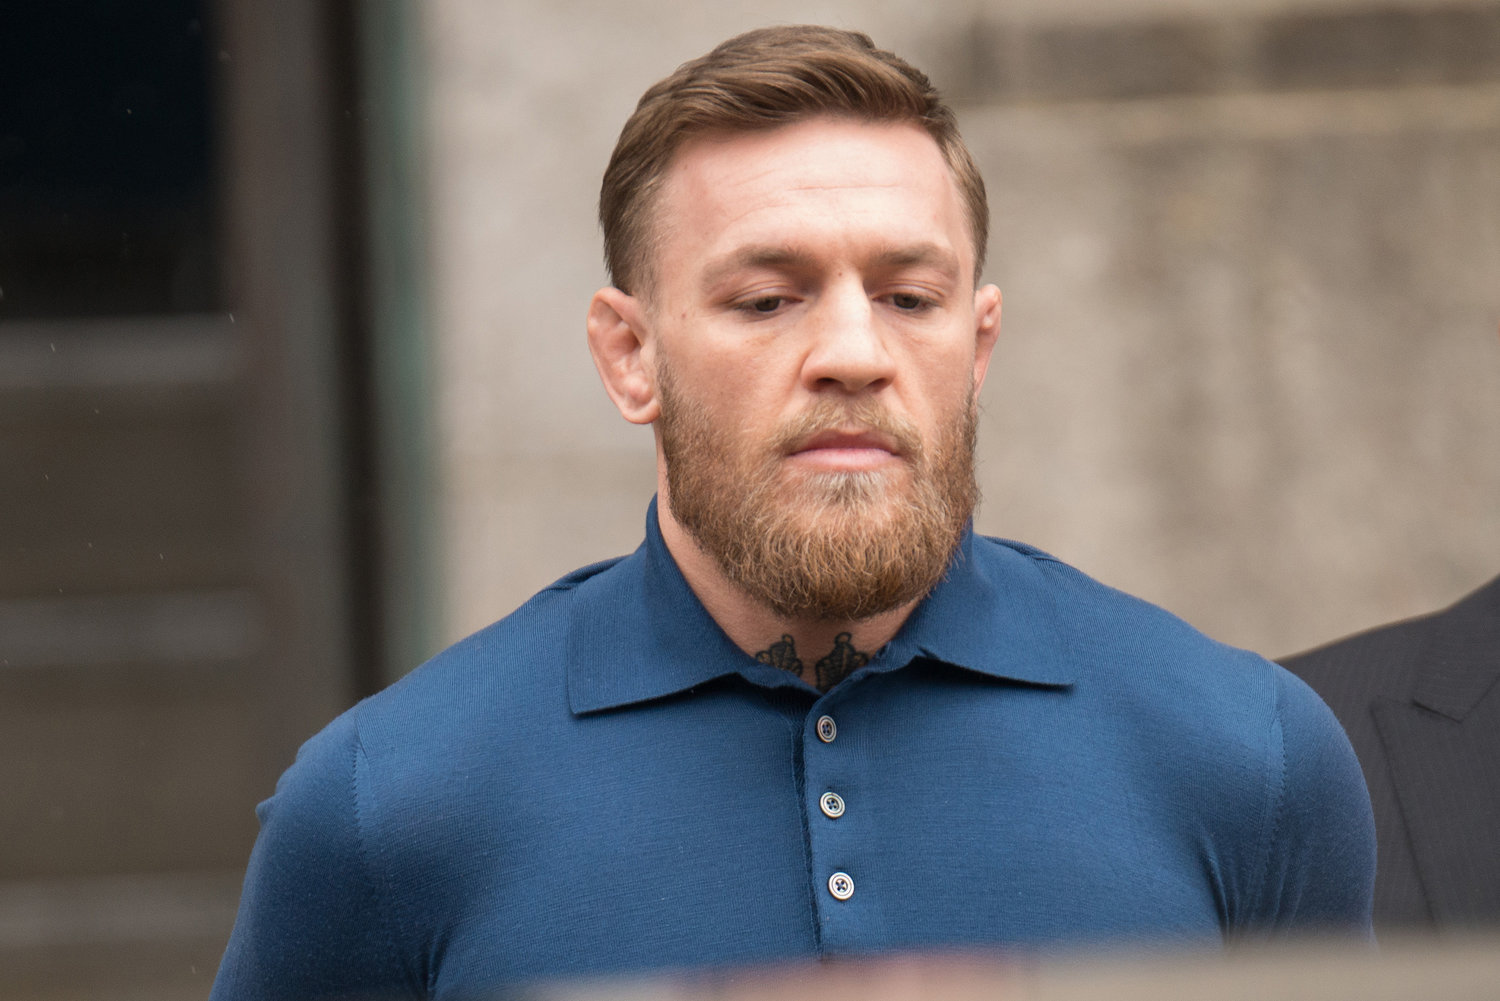 Conor McGregor is taken from the 78th Precinct in Brooklyn on Friday April 6, 2018.